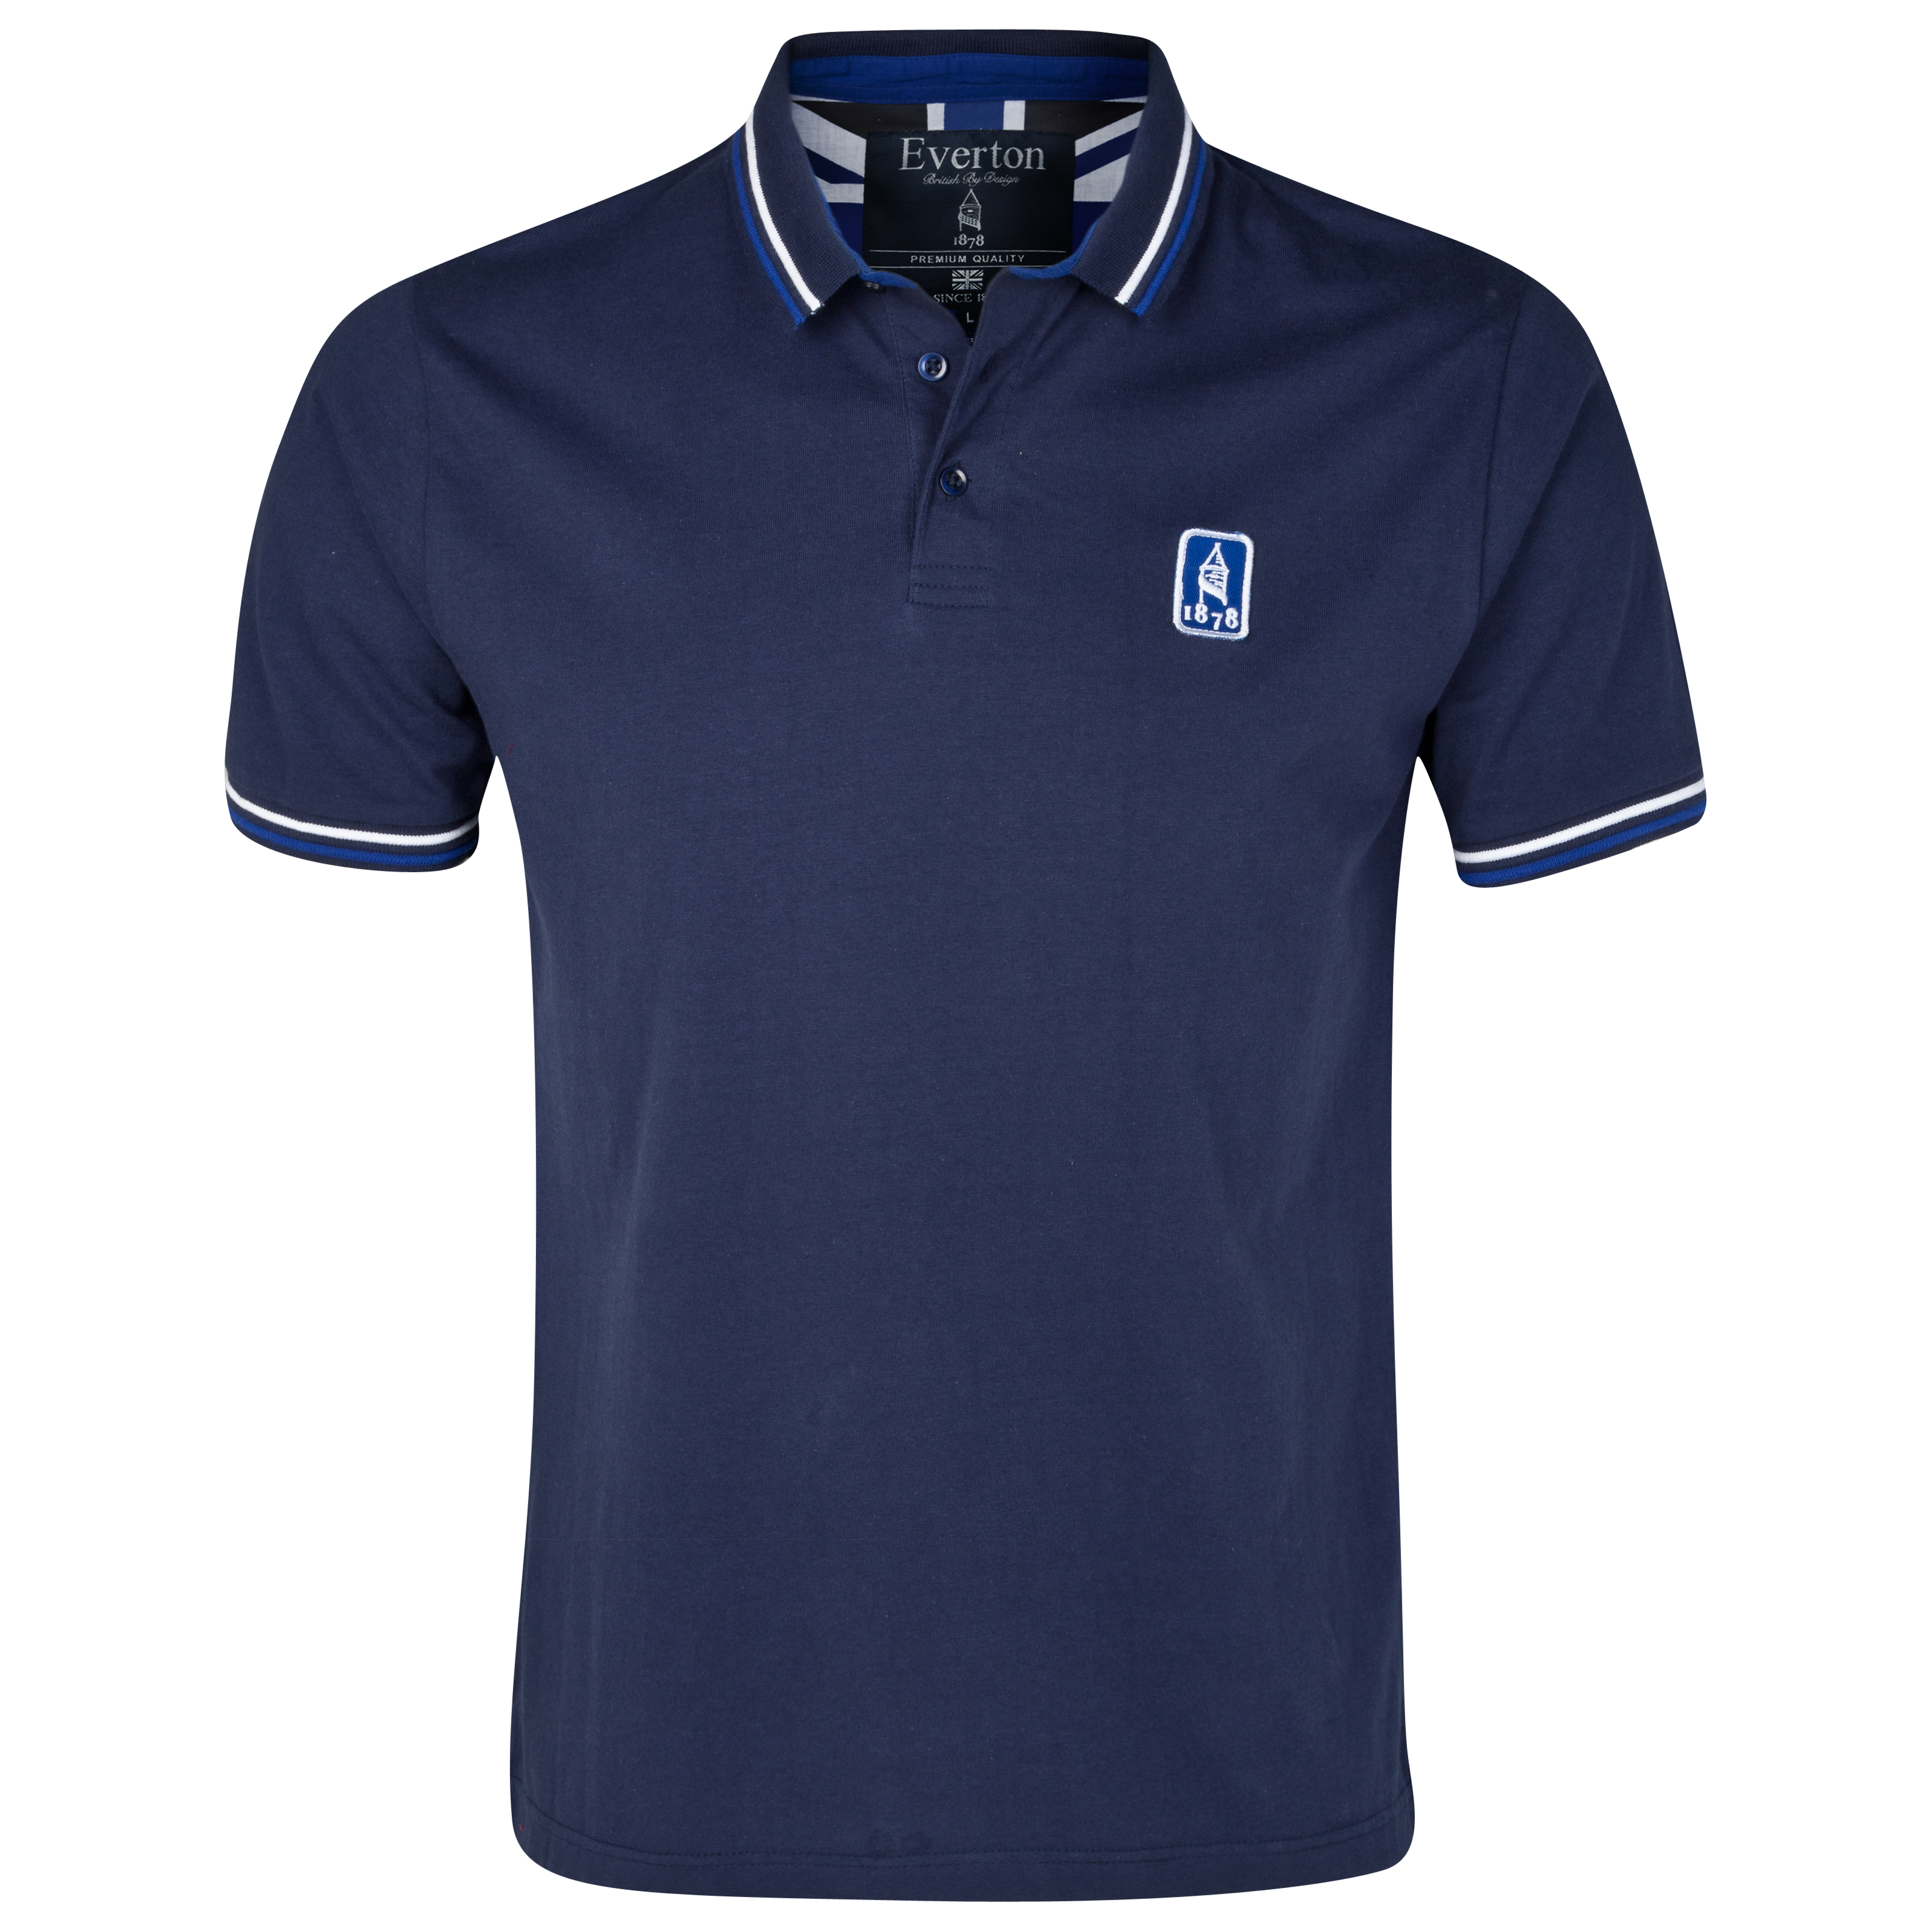 Everton Pier Polo Top - Navy